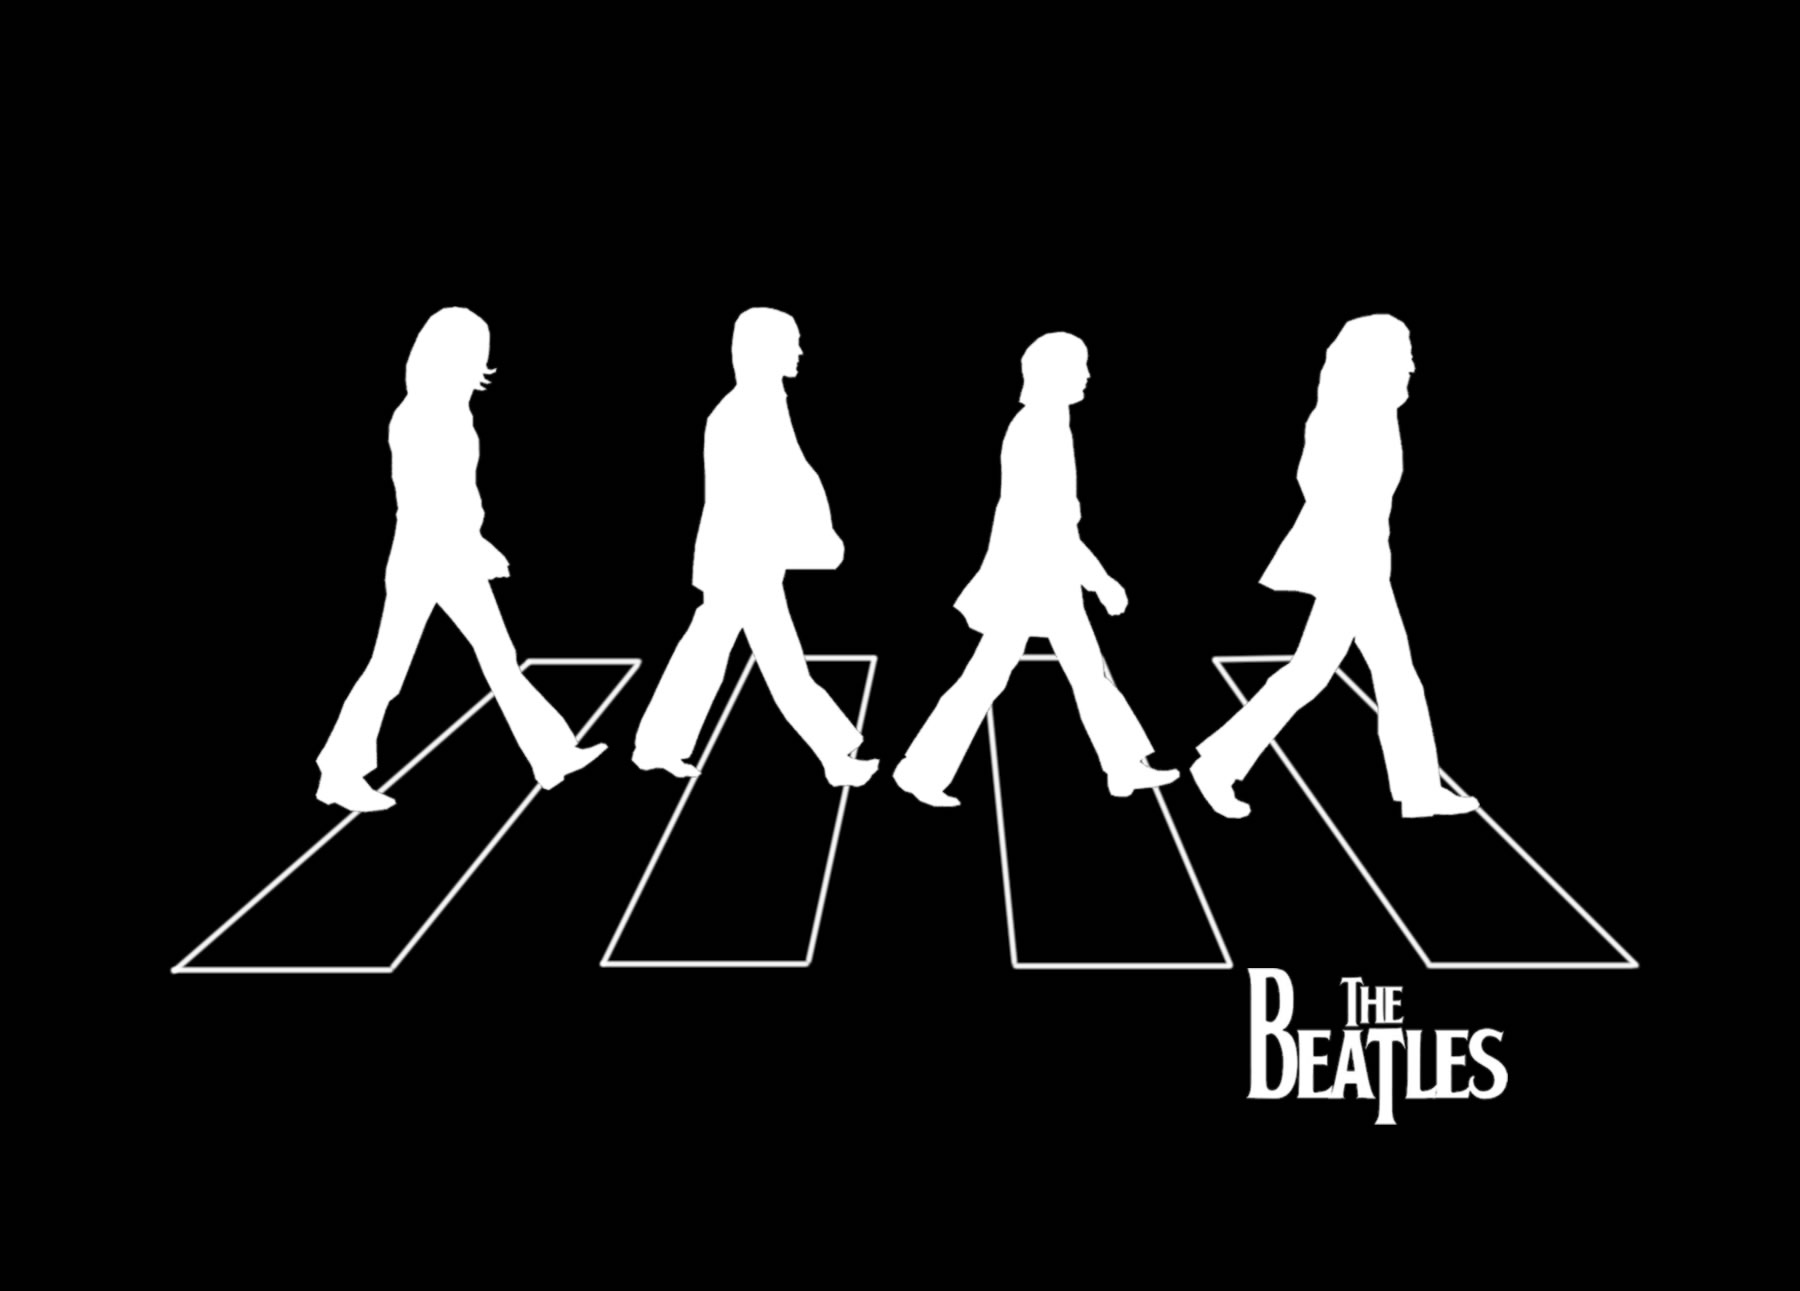 The Beatles Wallpapers  Wallpaper  1800x1291